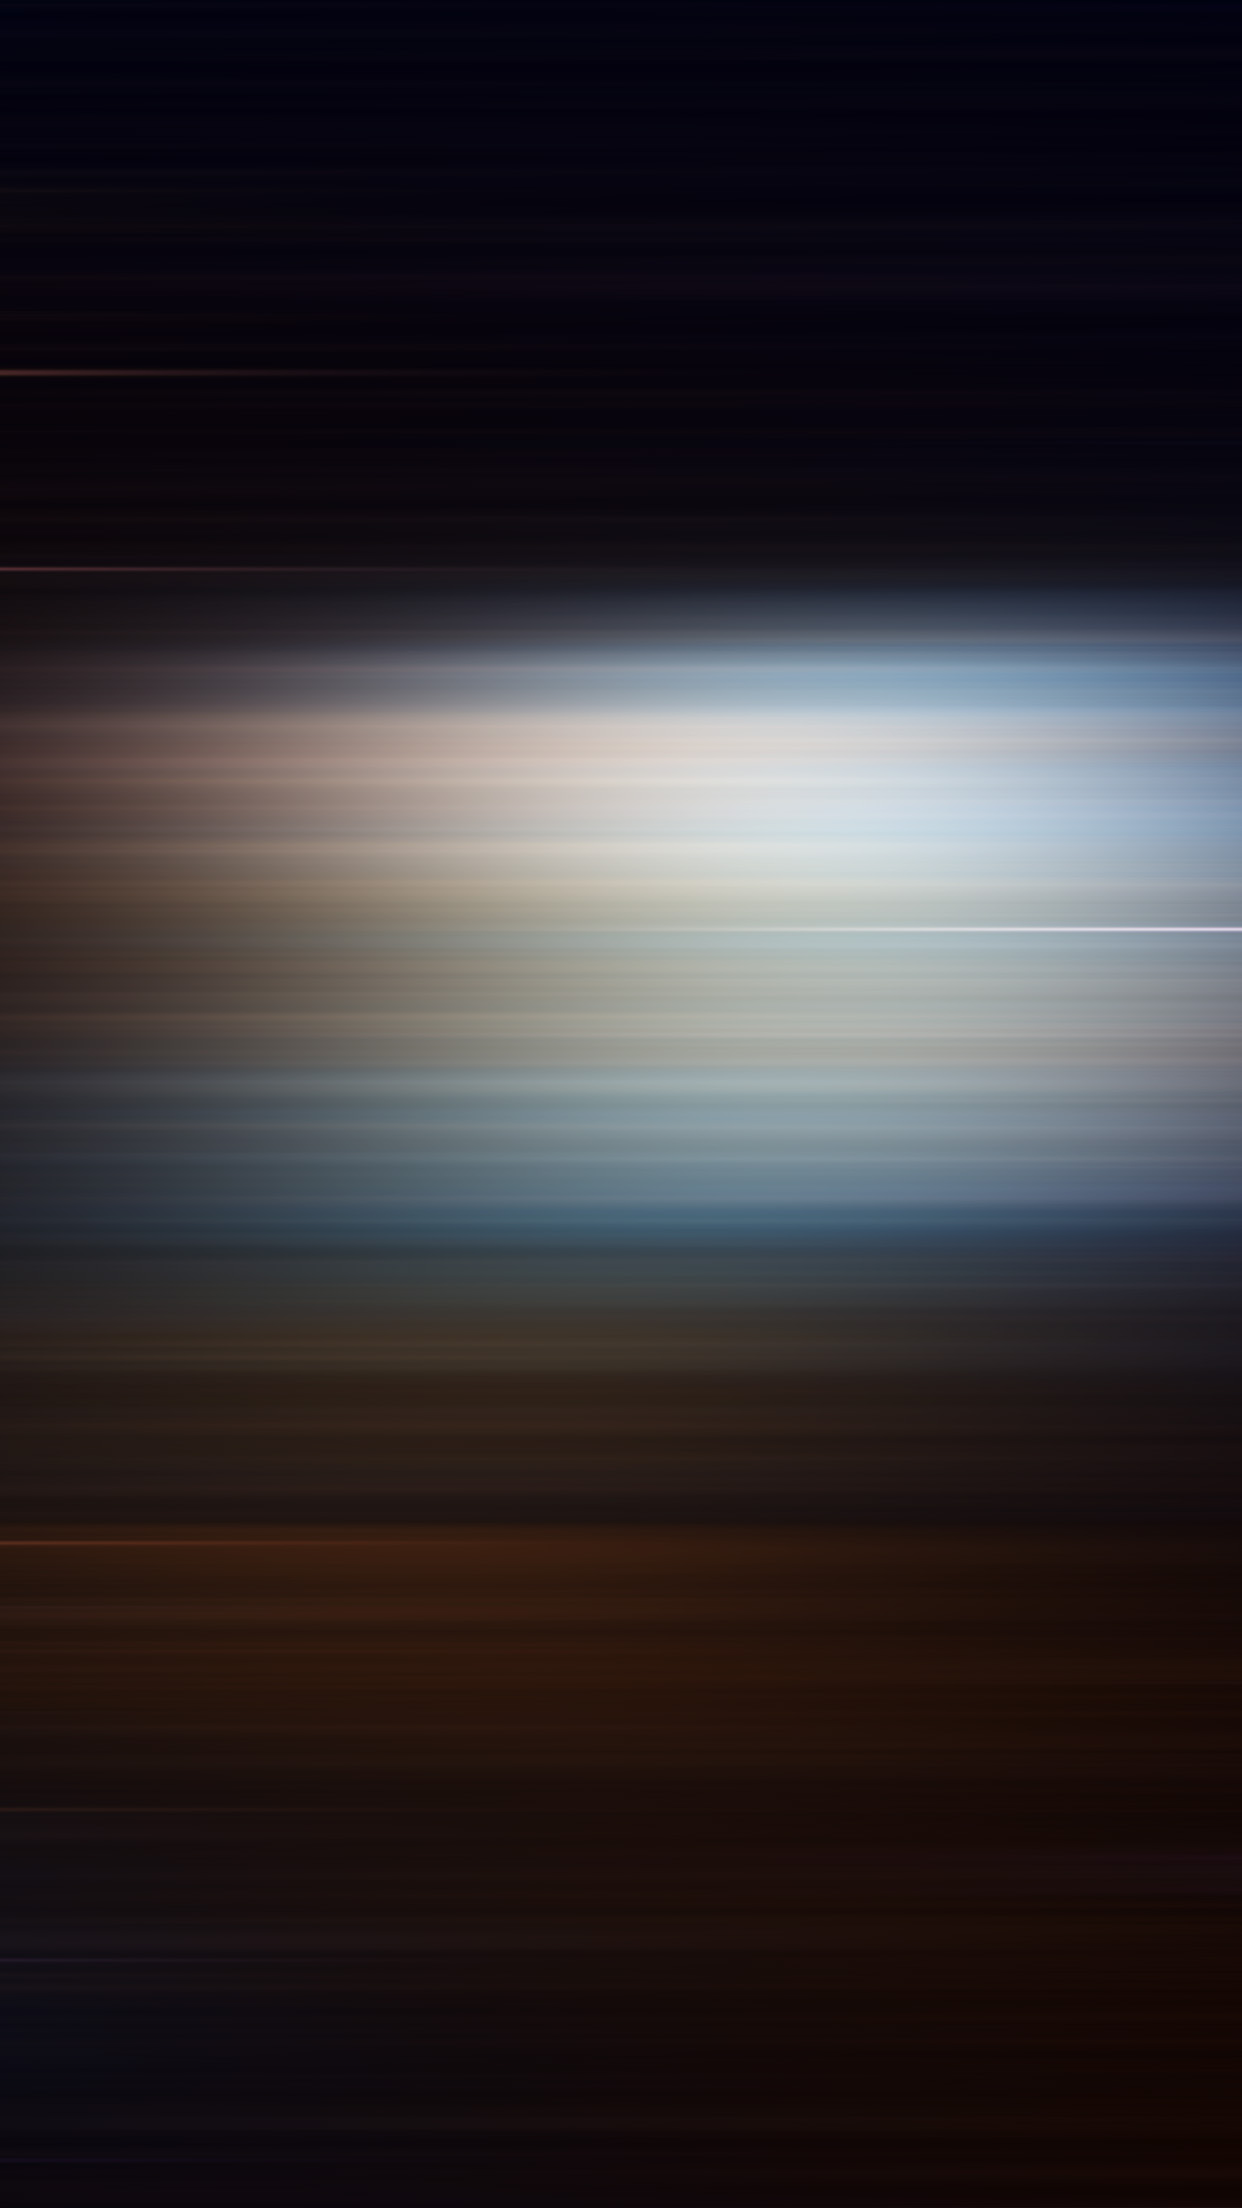 iphone6papers - sf95-dark-motion-speed-abstract-gradation-blur